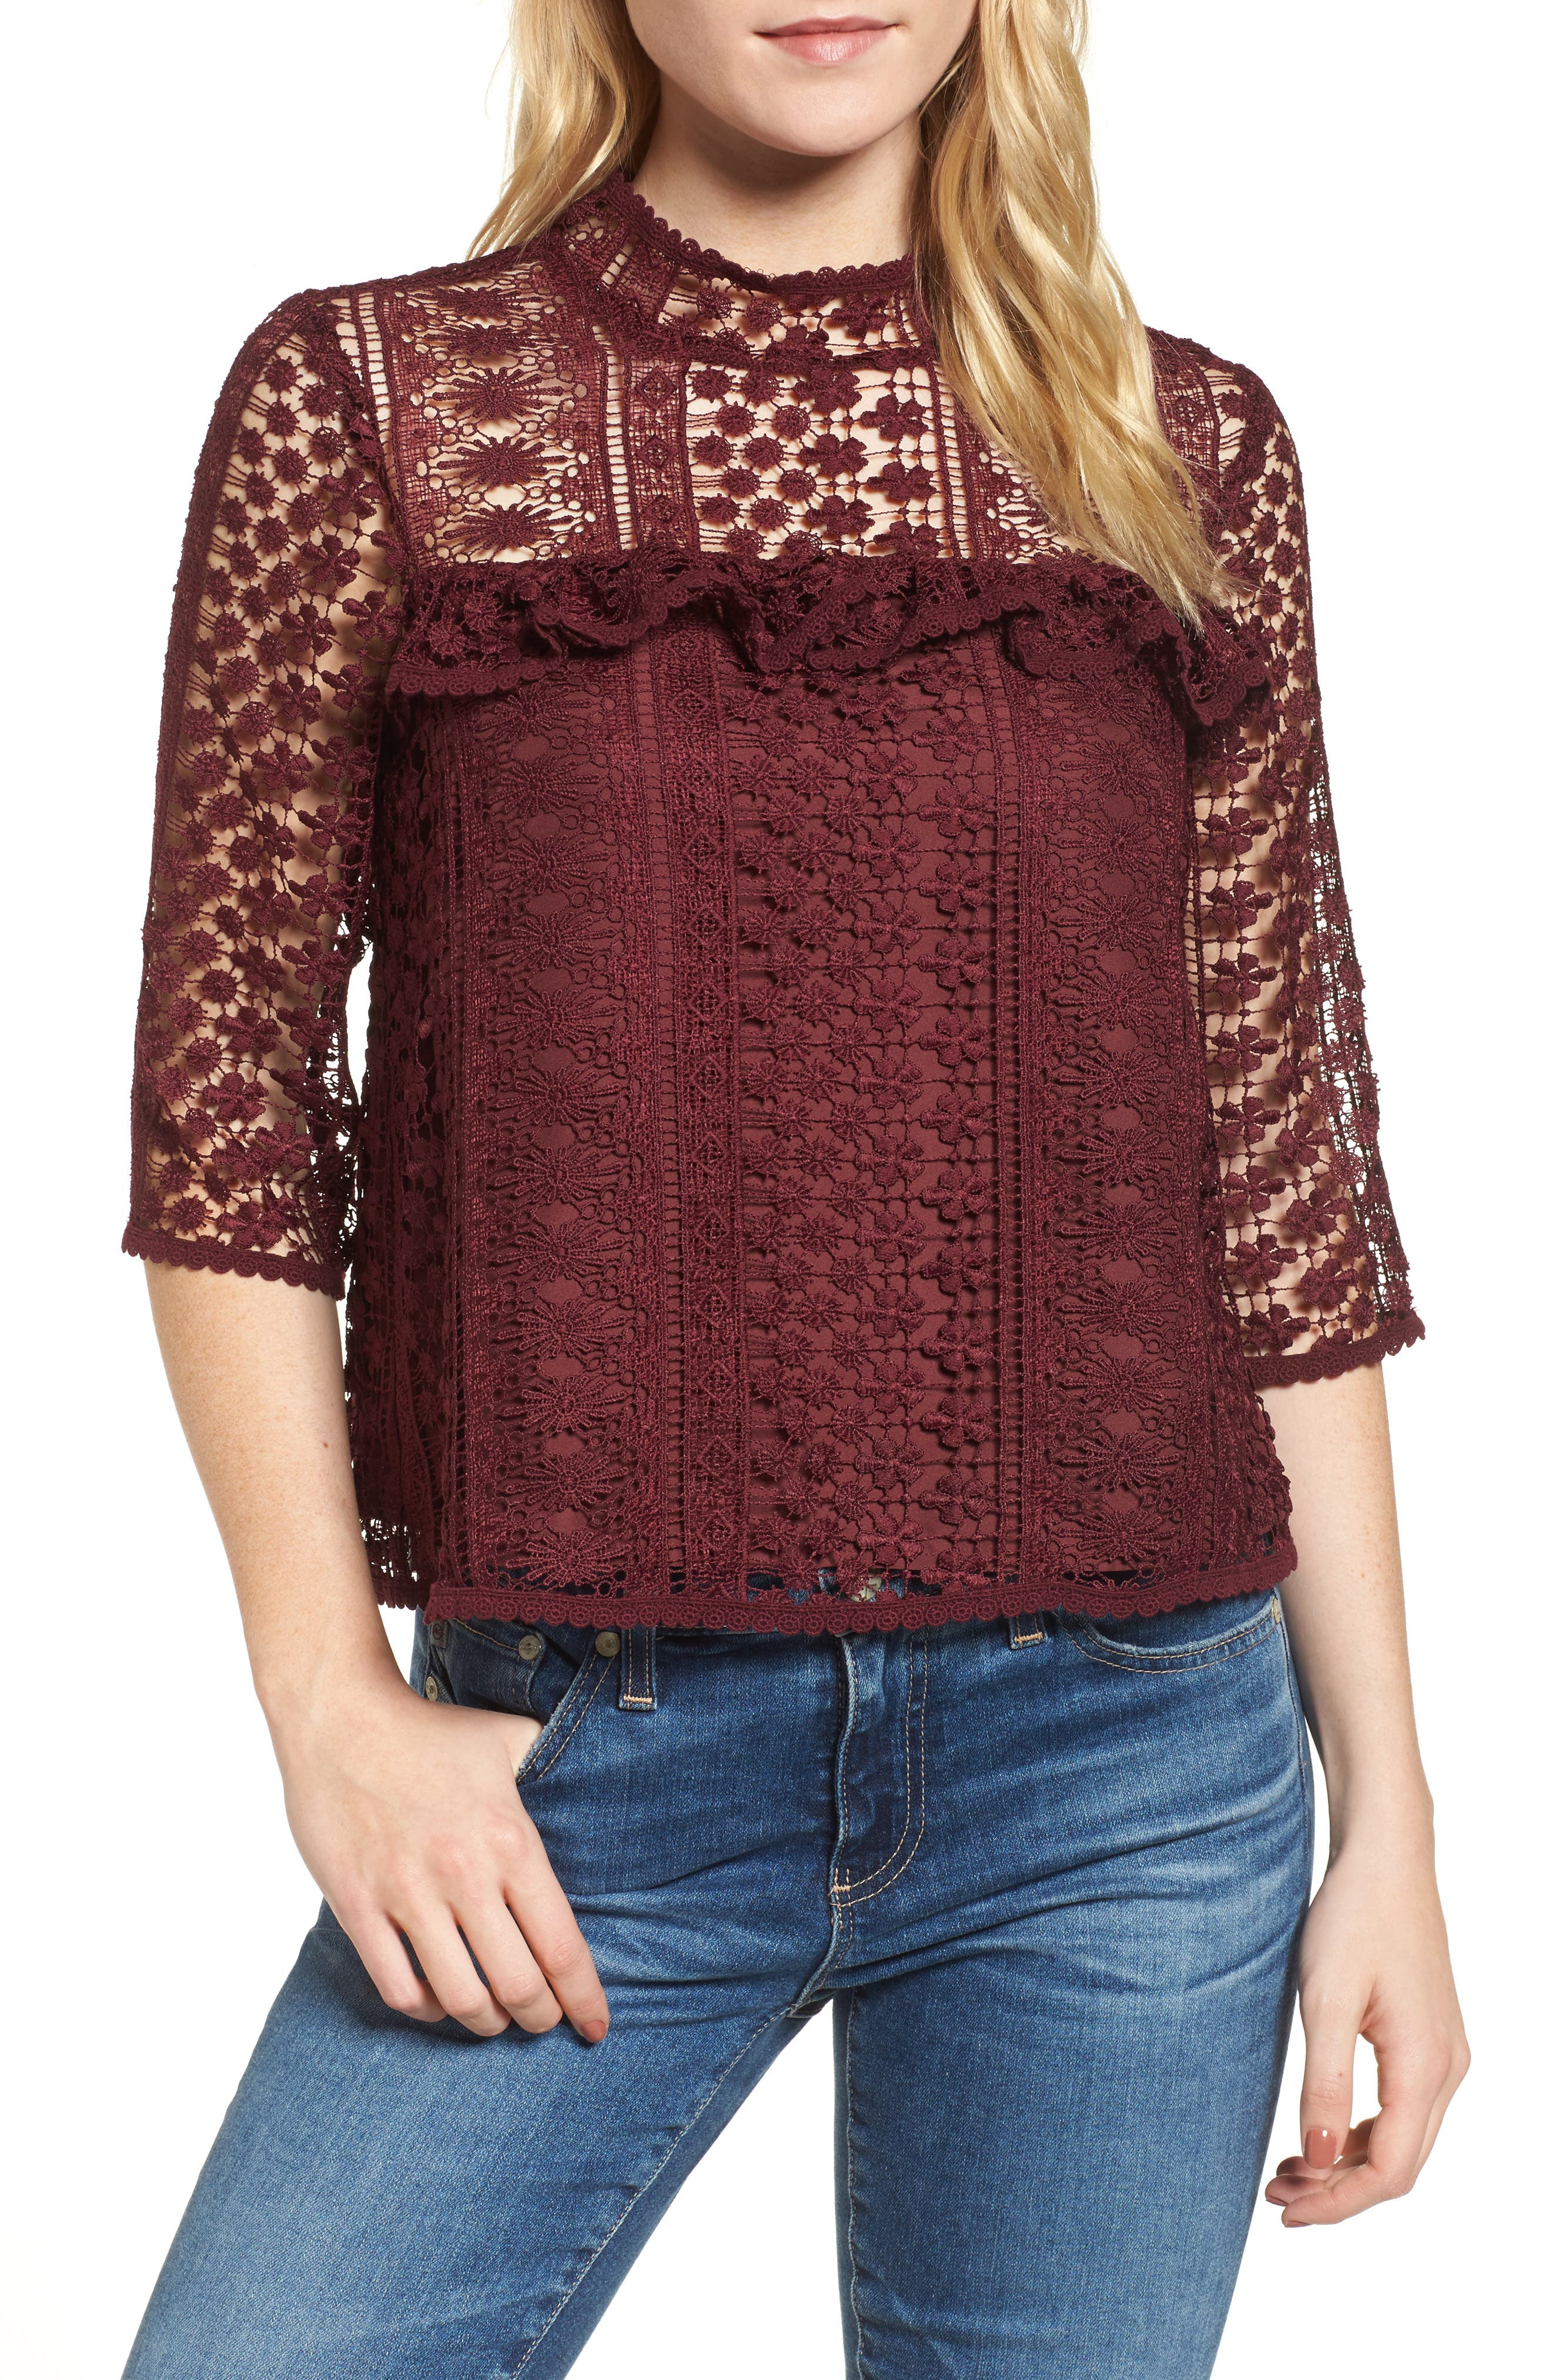 Main Image - cupcakes and cashmere Kebecka Lace Top